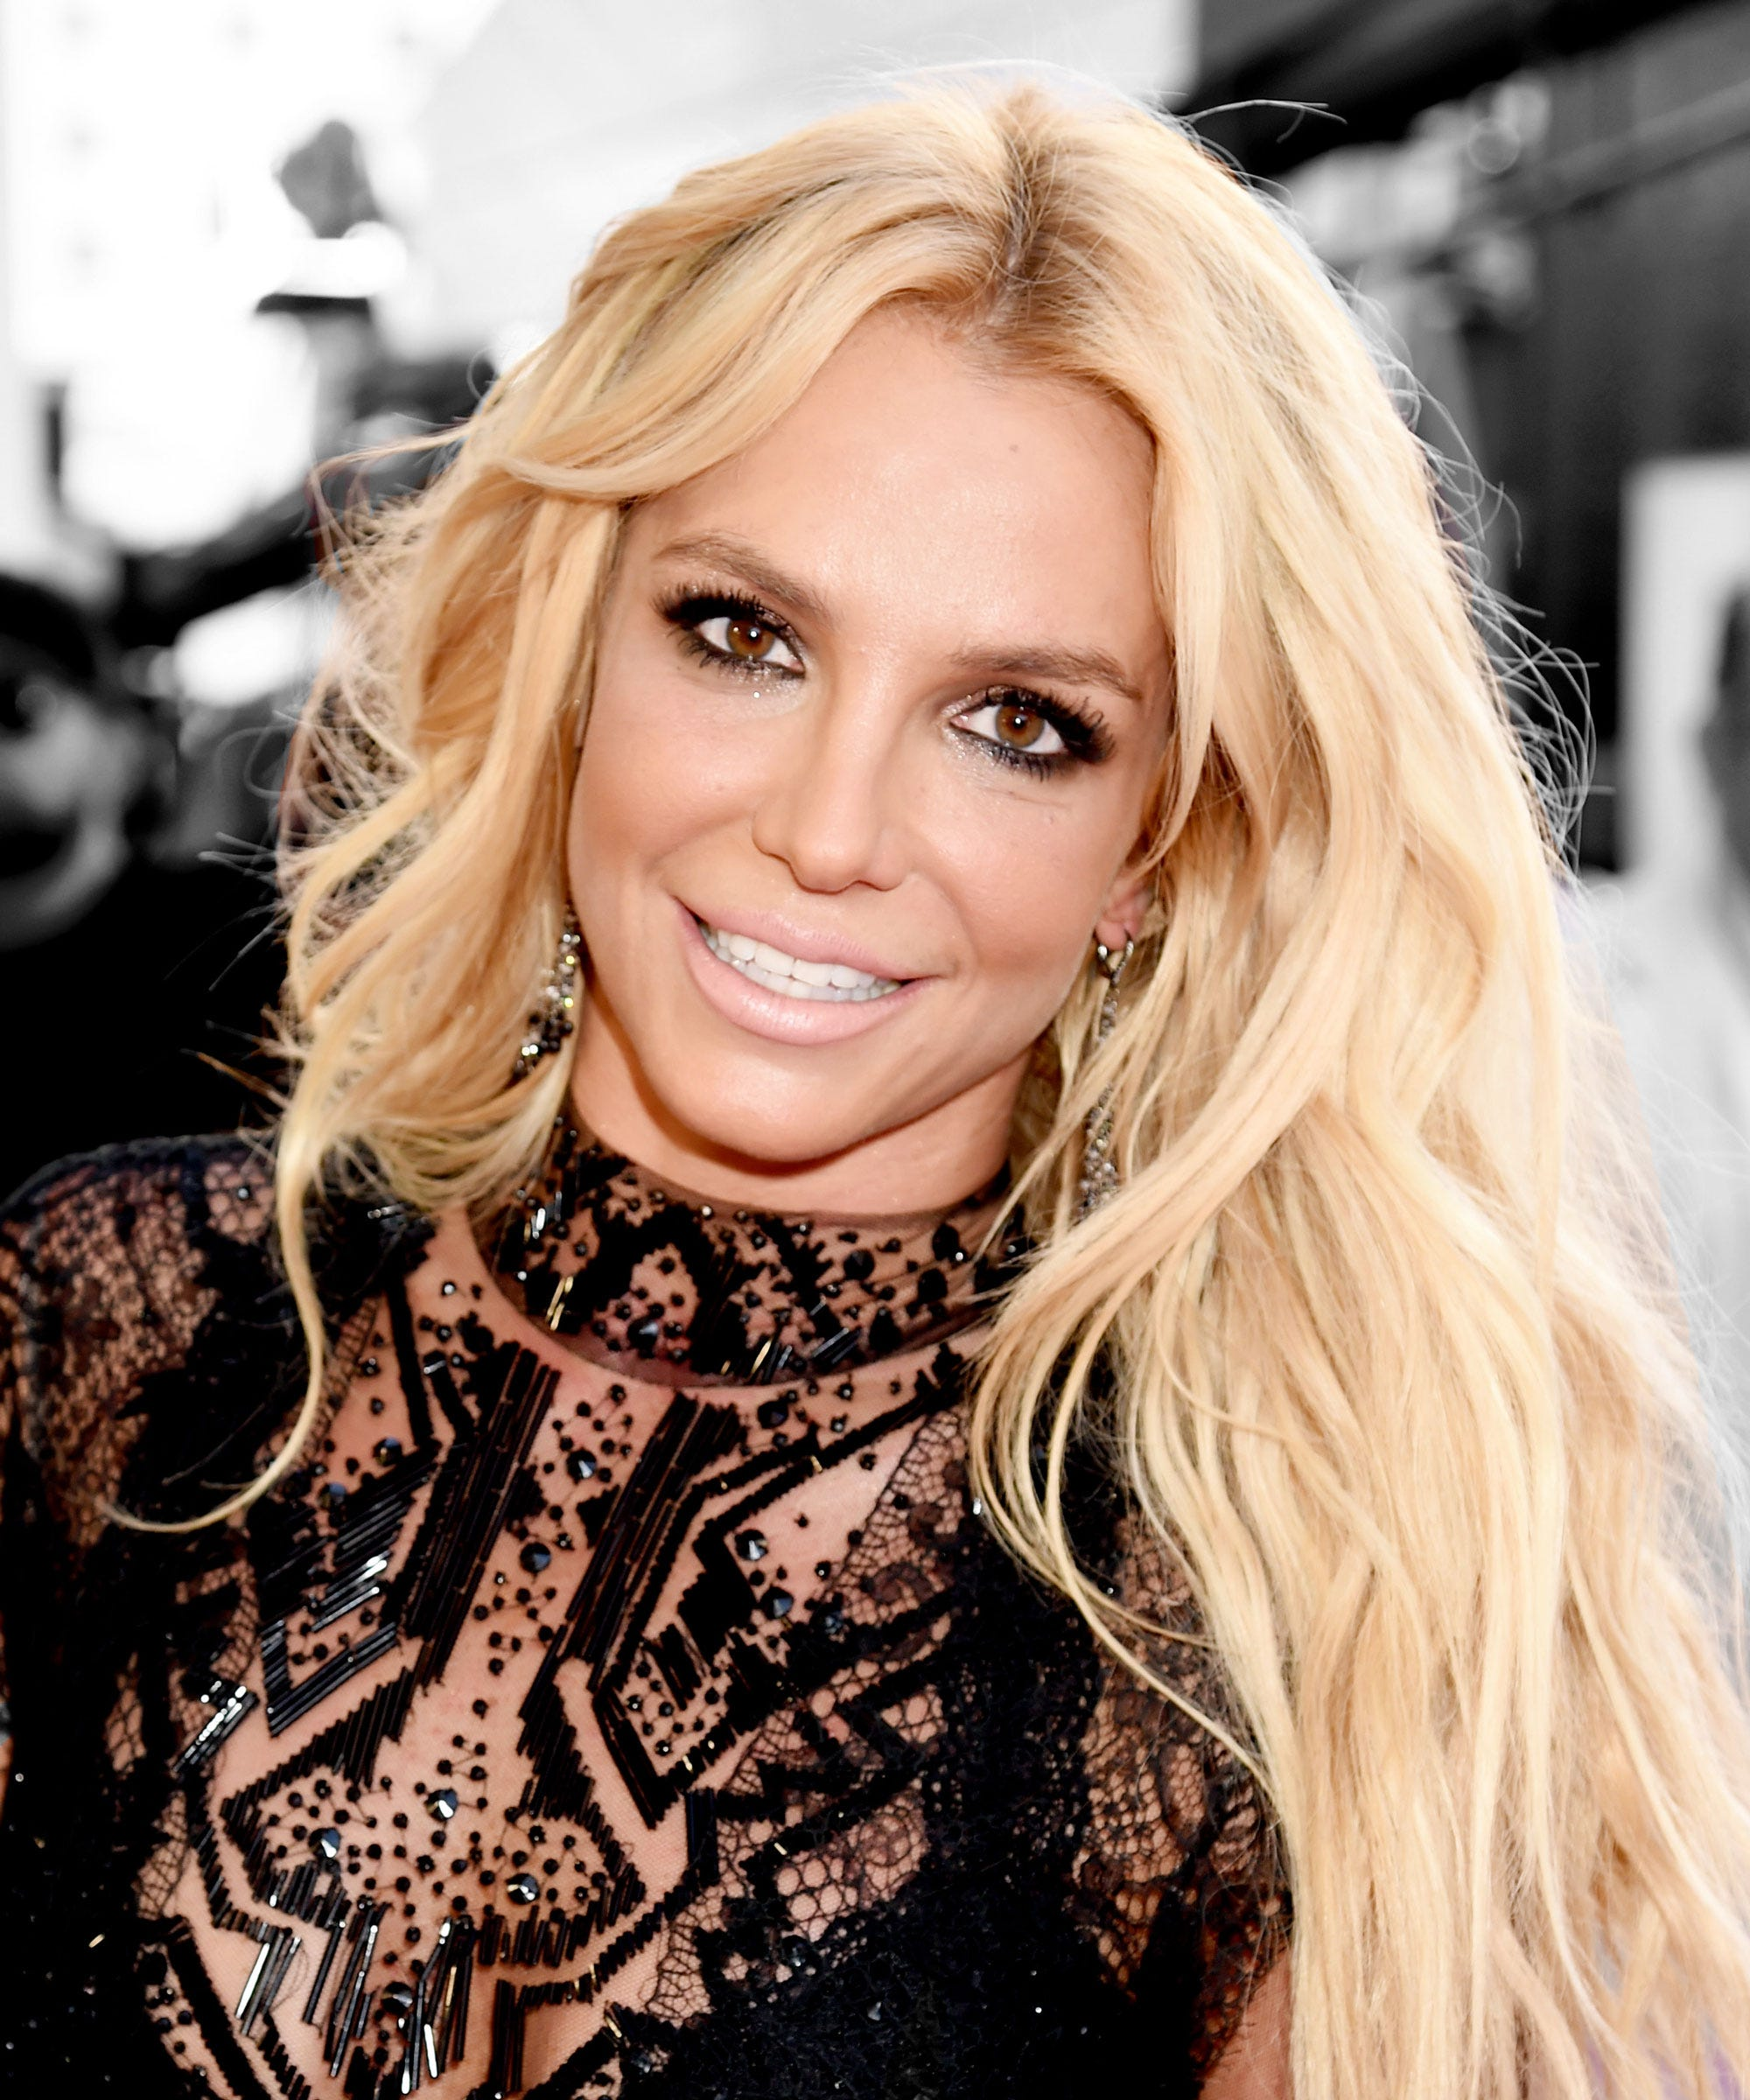 Britney spears frequently shows nude pop fashion